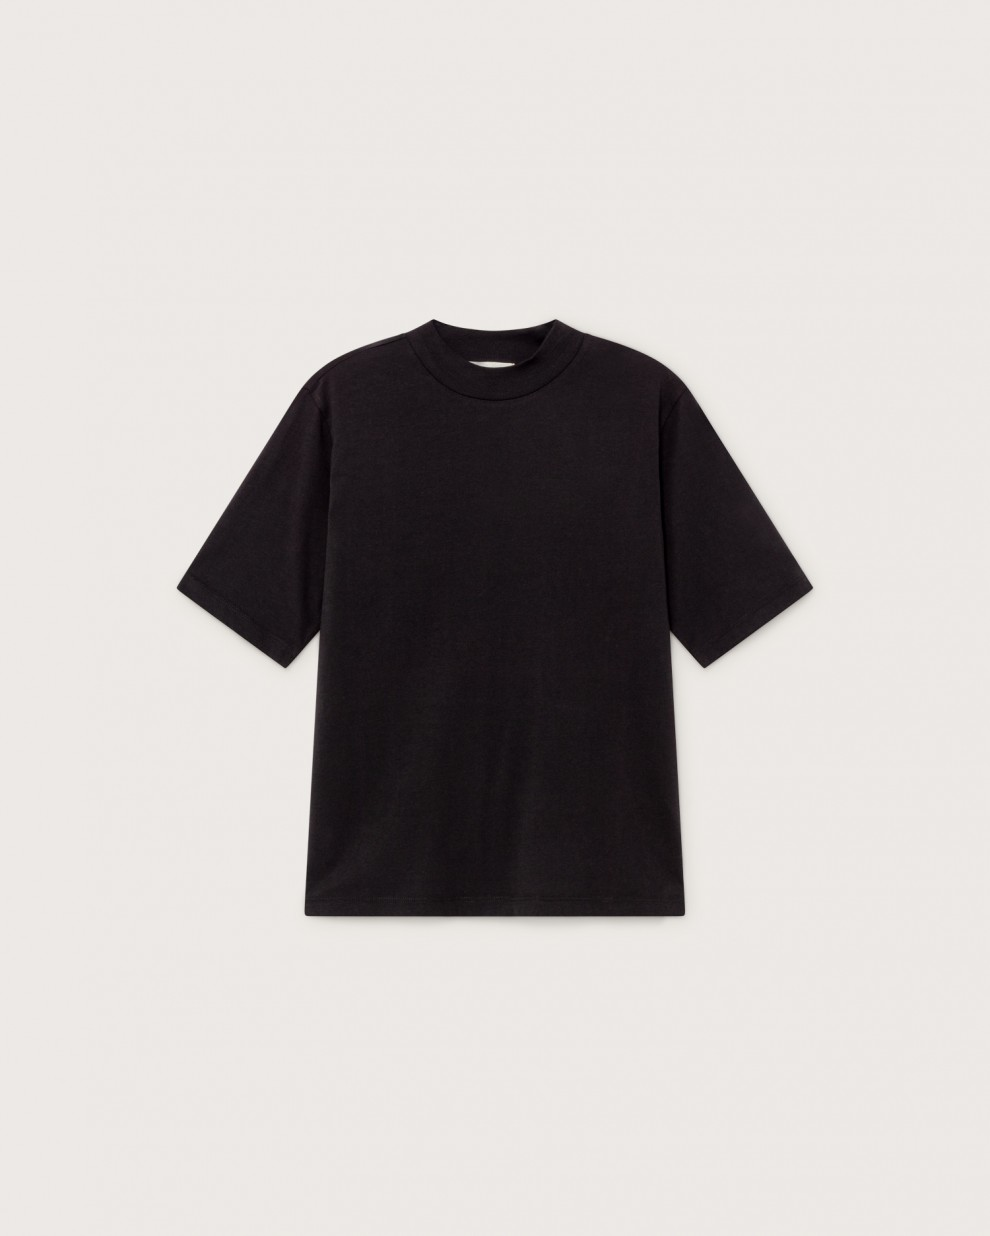 BASIC BLACK MOCK T-SHIRT